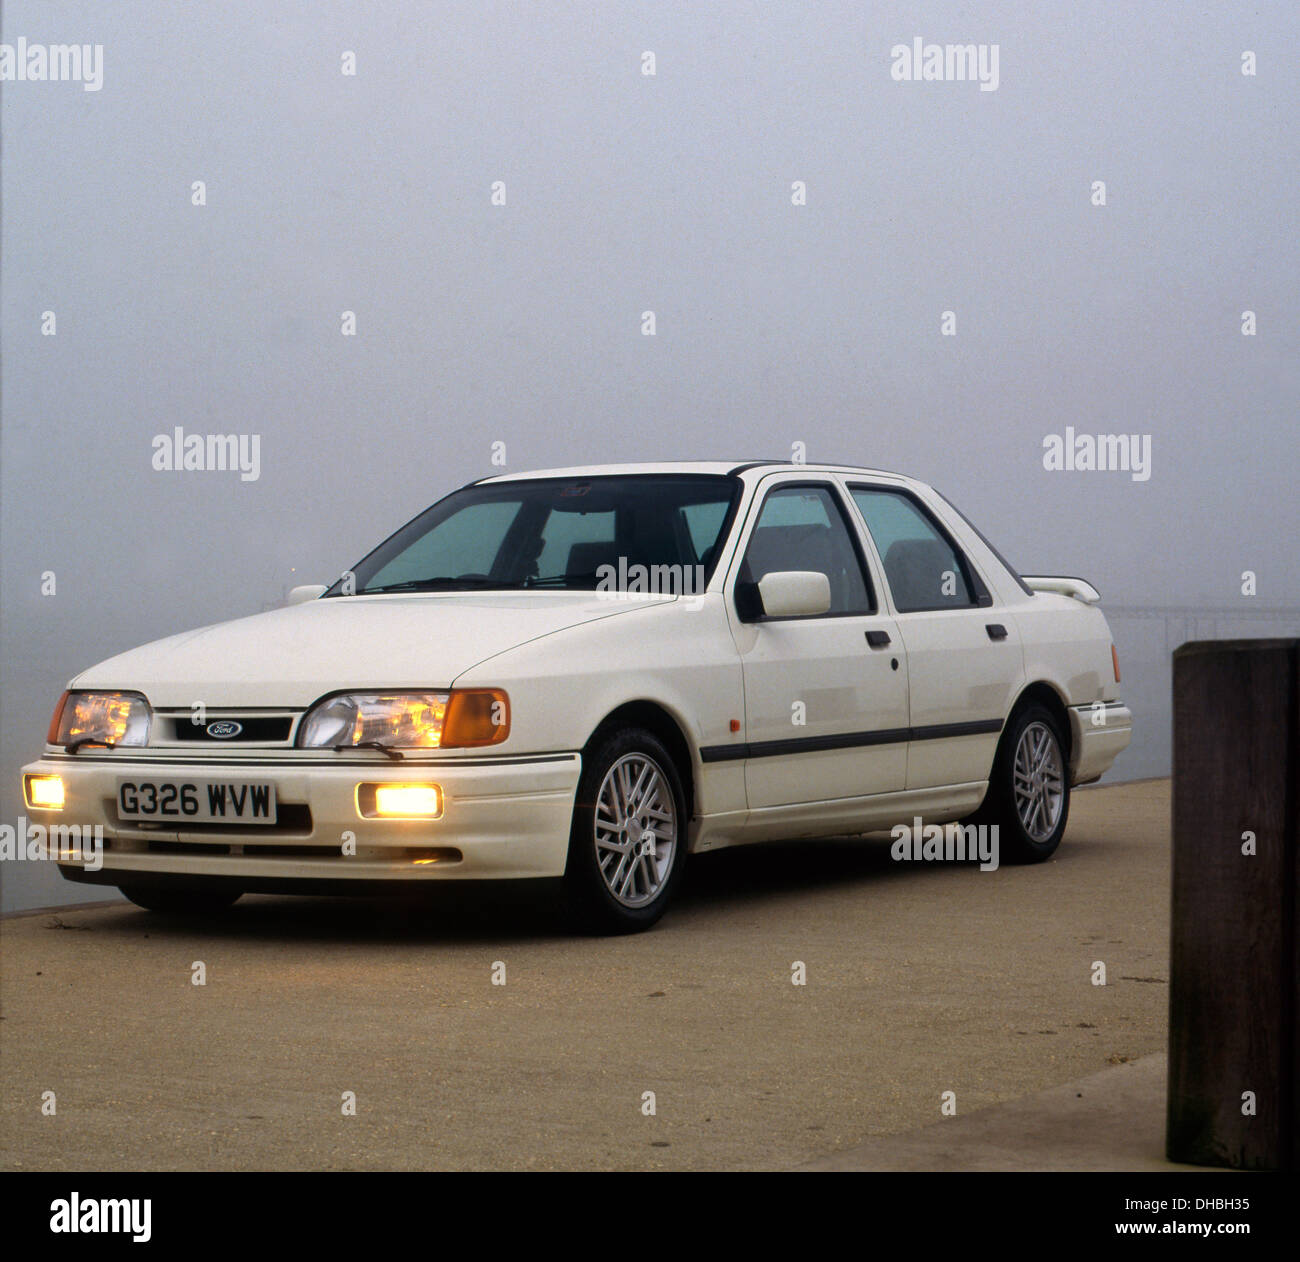 Ford Sierra Sapphire RS Cosworth 1989 - Stock Image